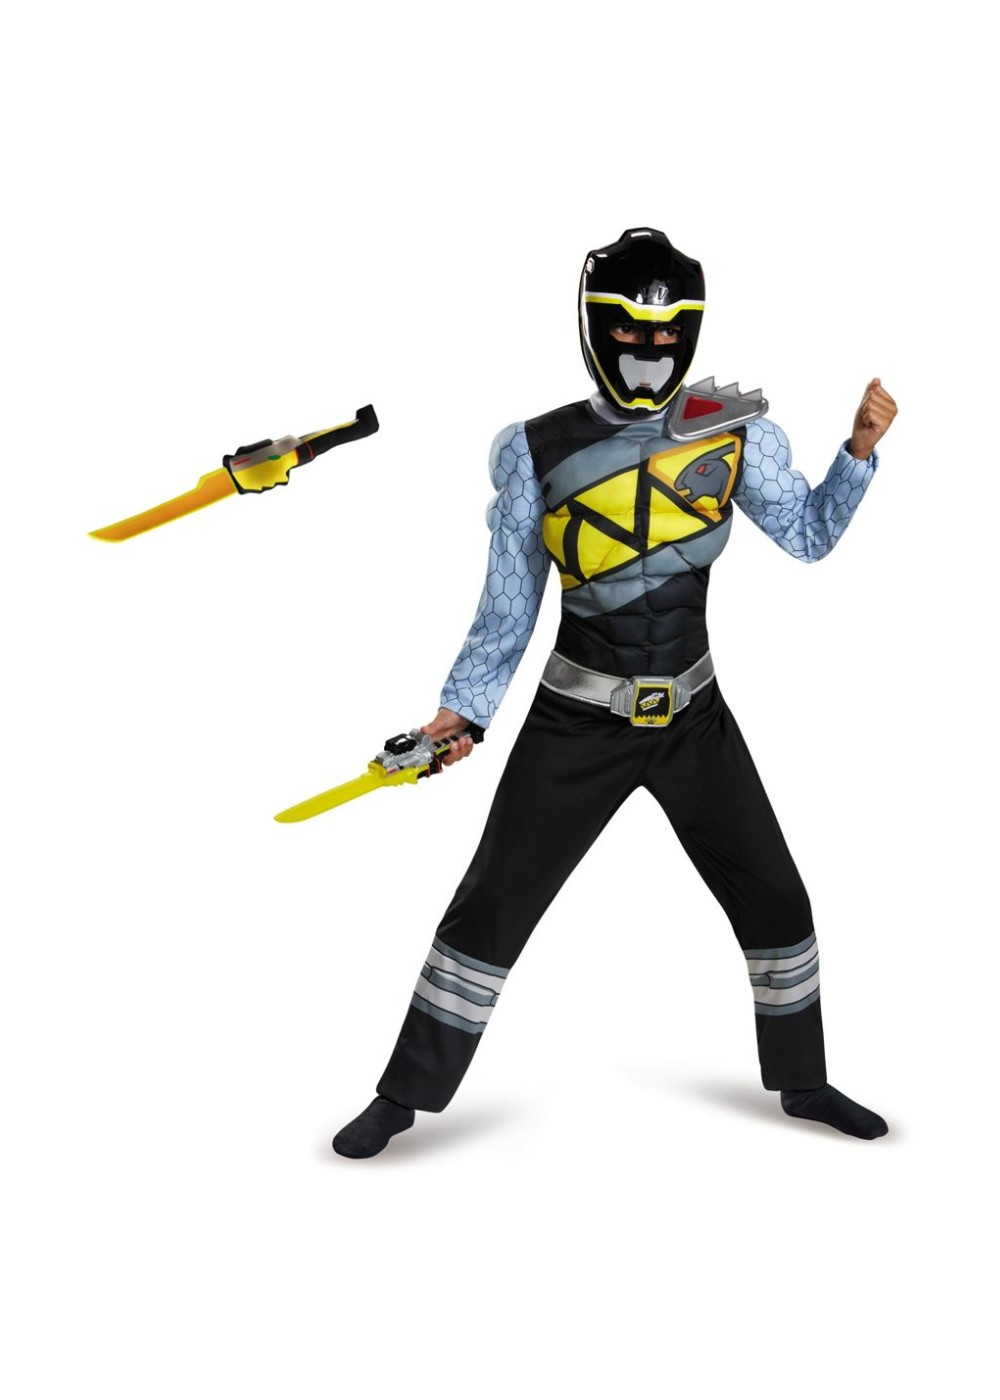 Target Toys For Boys Swords : Black power ranger dino charge boys costume and toy sword